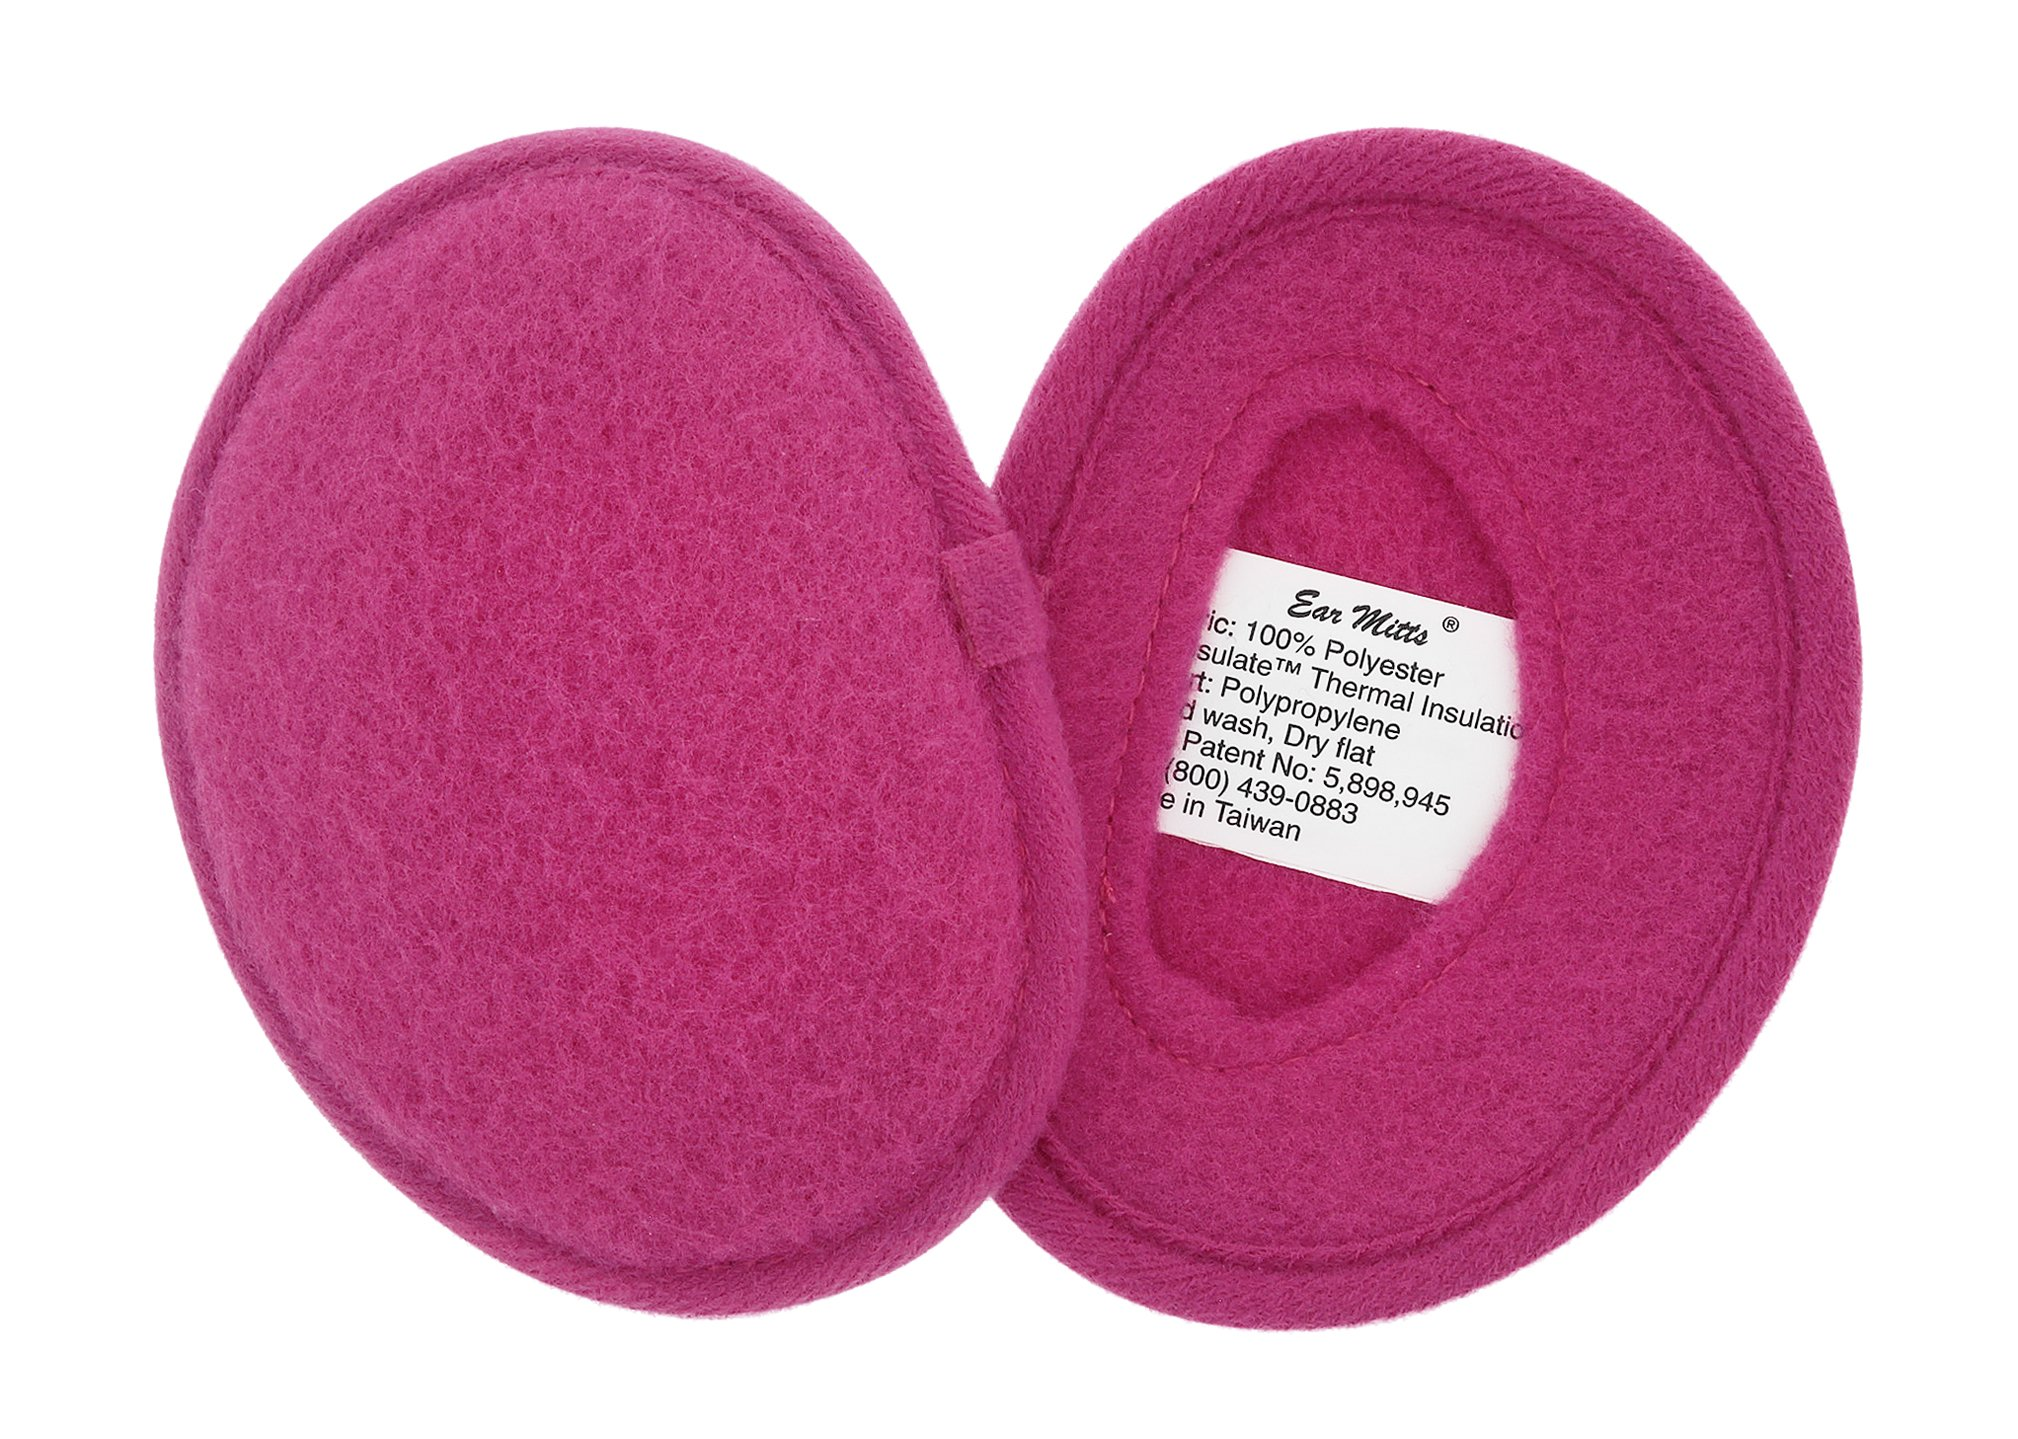 Ear Mitts Bandless Ear Muffs For Women, Bright Pink Fleece Ear Warmers, Regular